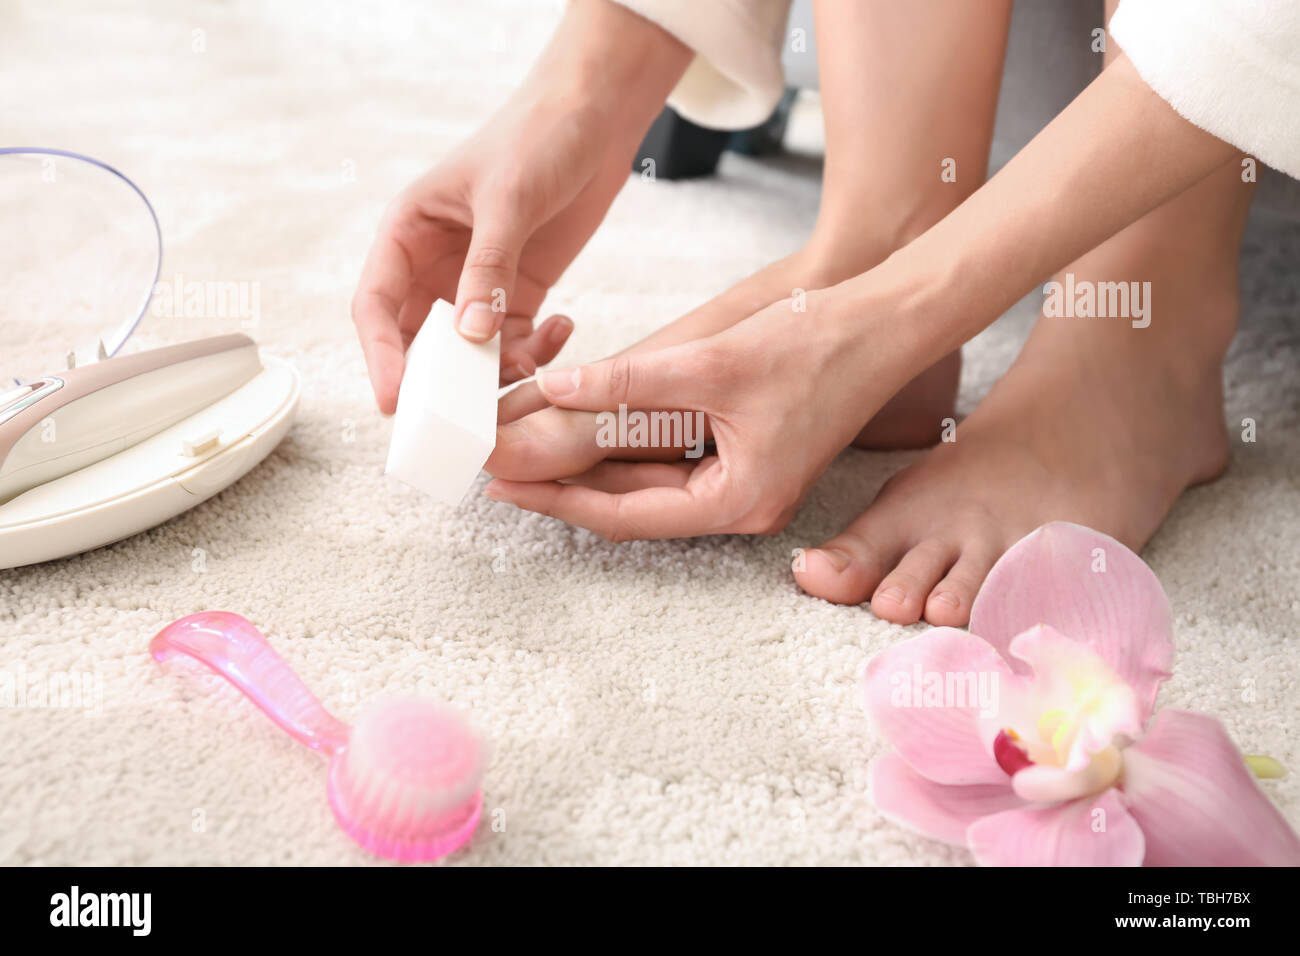 Young woman polishing her nails at home Stock Photo